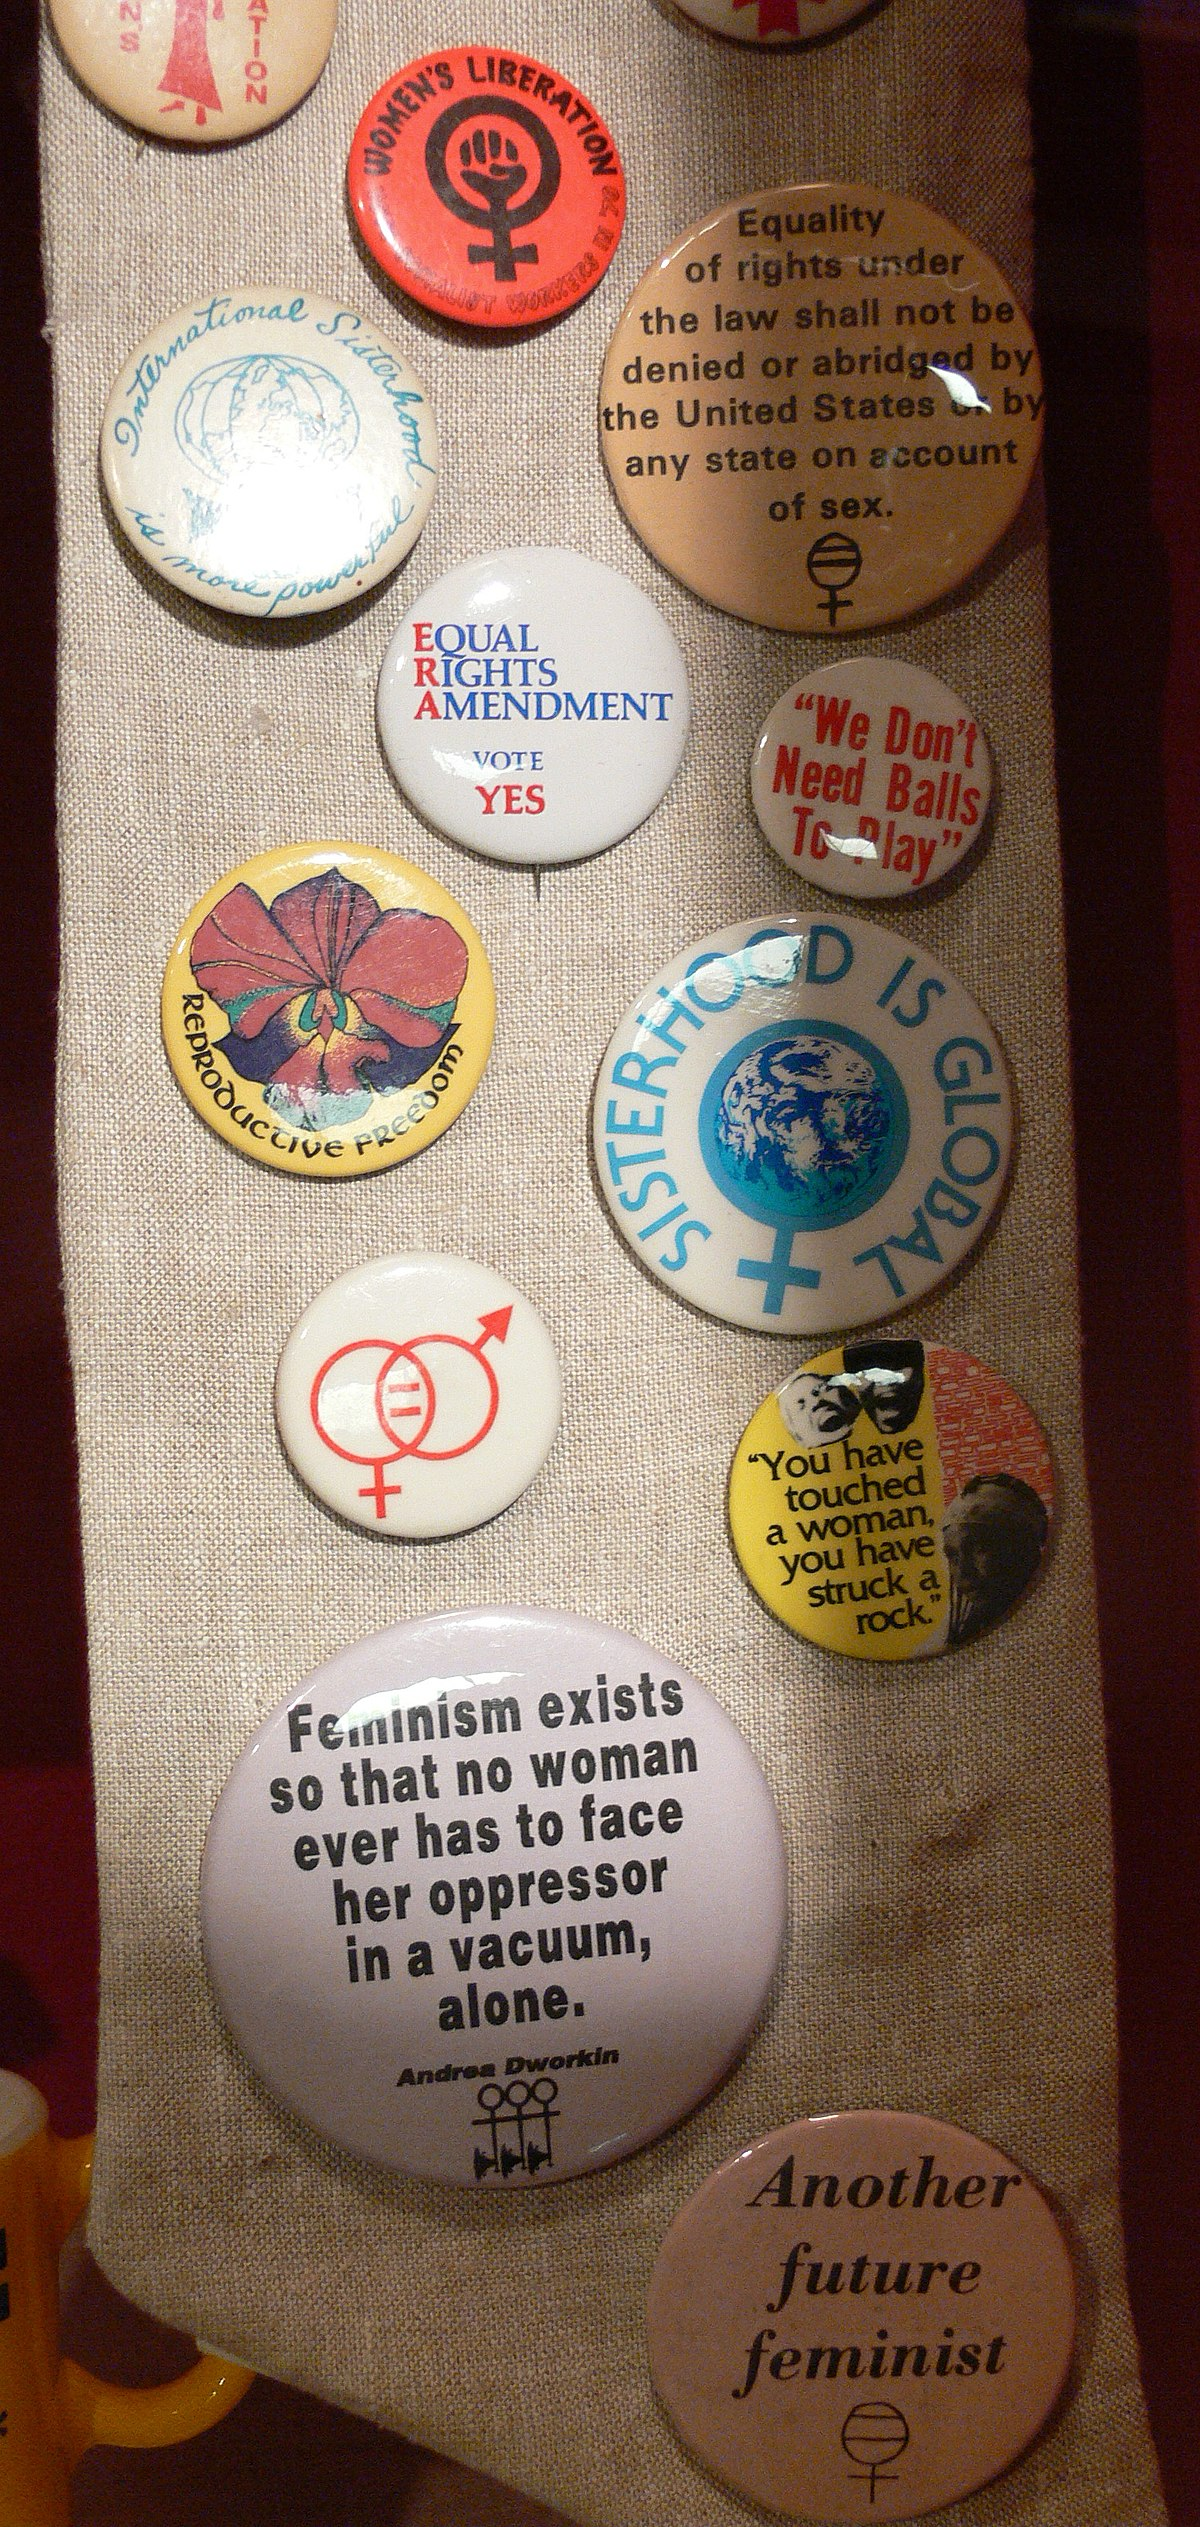 Feminist movements and ideologies - Wikipedia